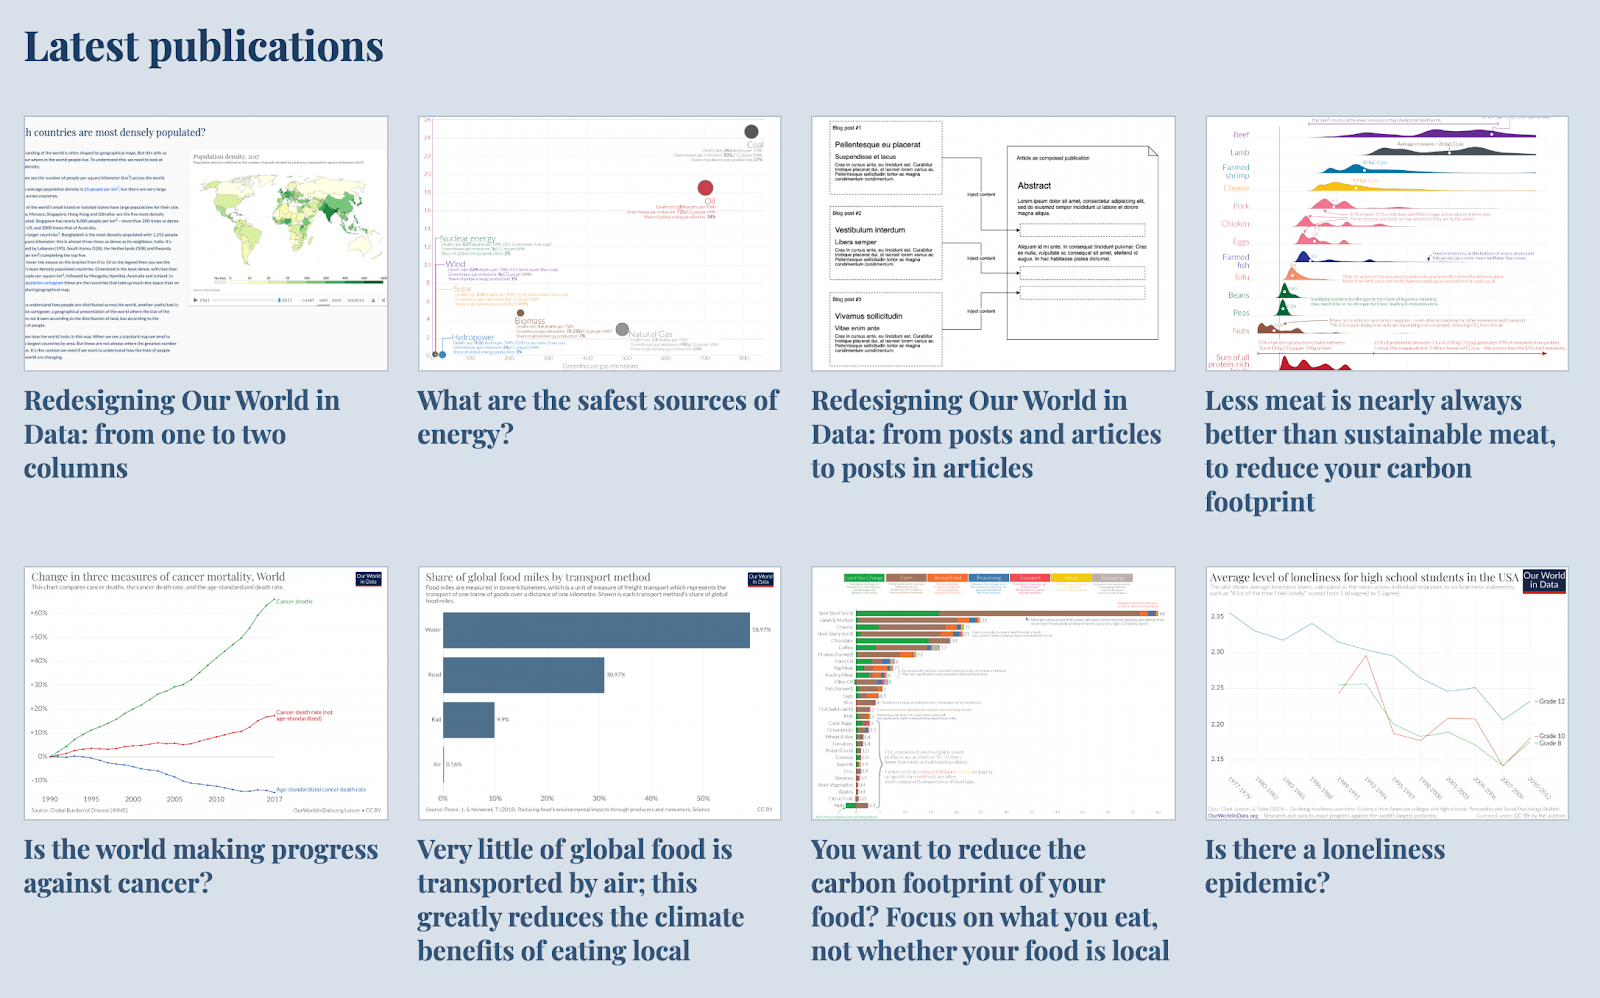 Screenshot of latest publications from Our World in Data.